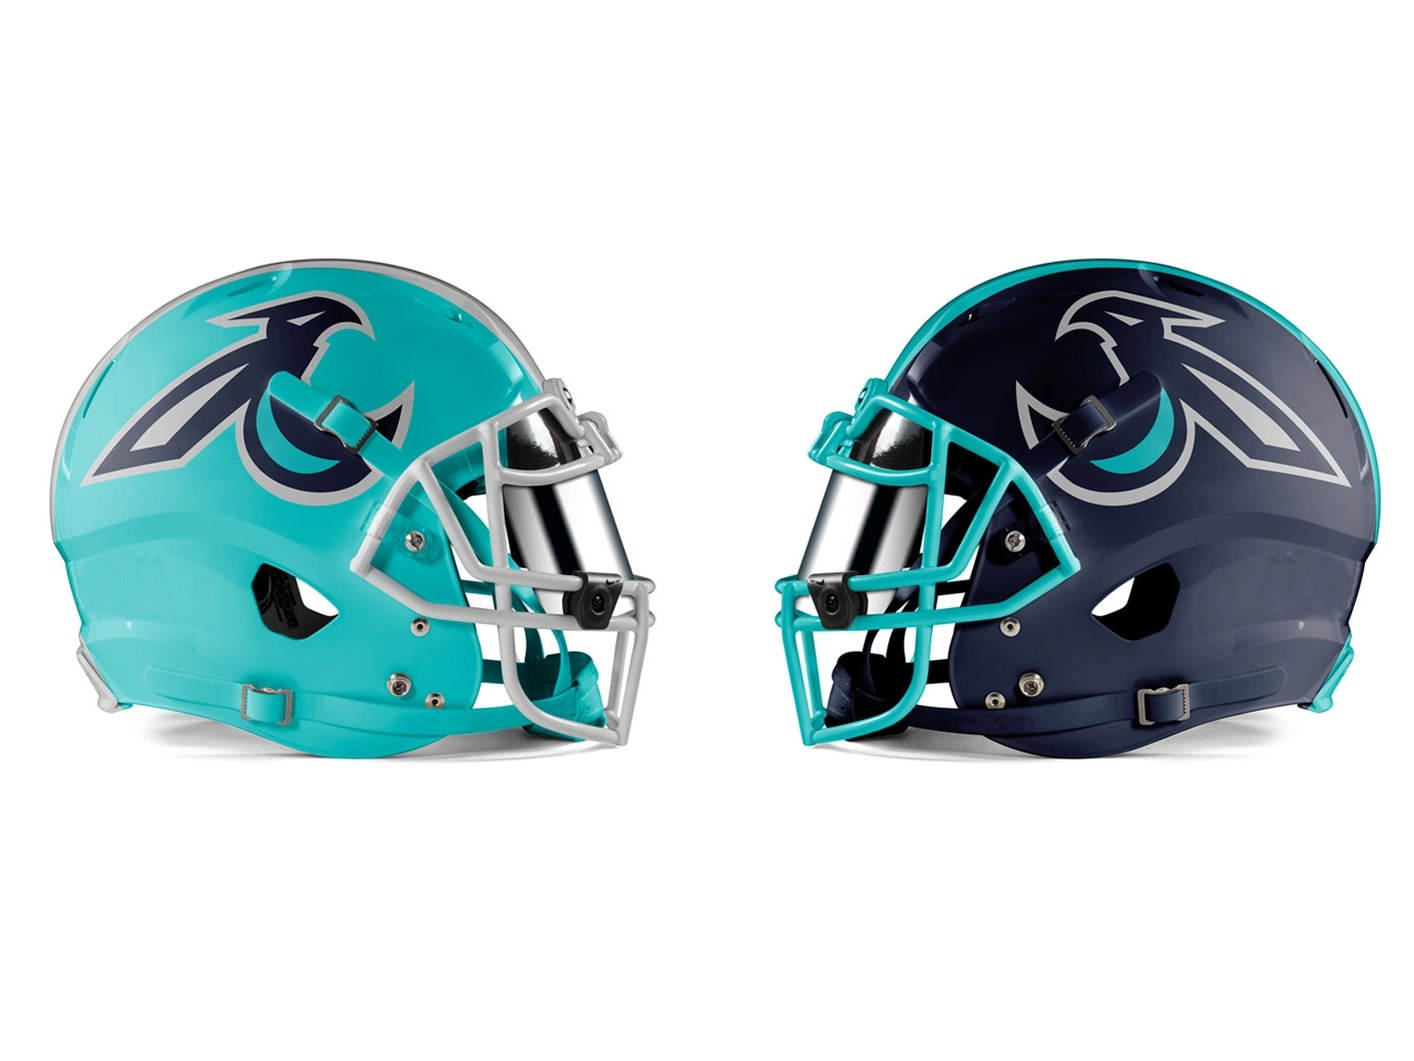 Football Helmet Designs Themes Templates And Downloadable Graphic Elements On Dribbble